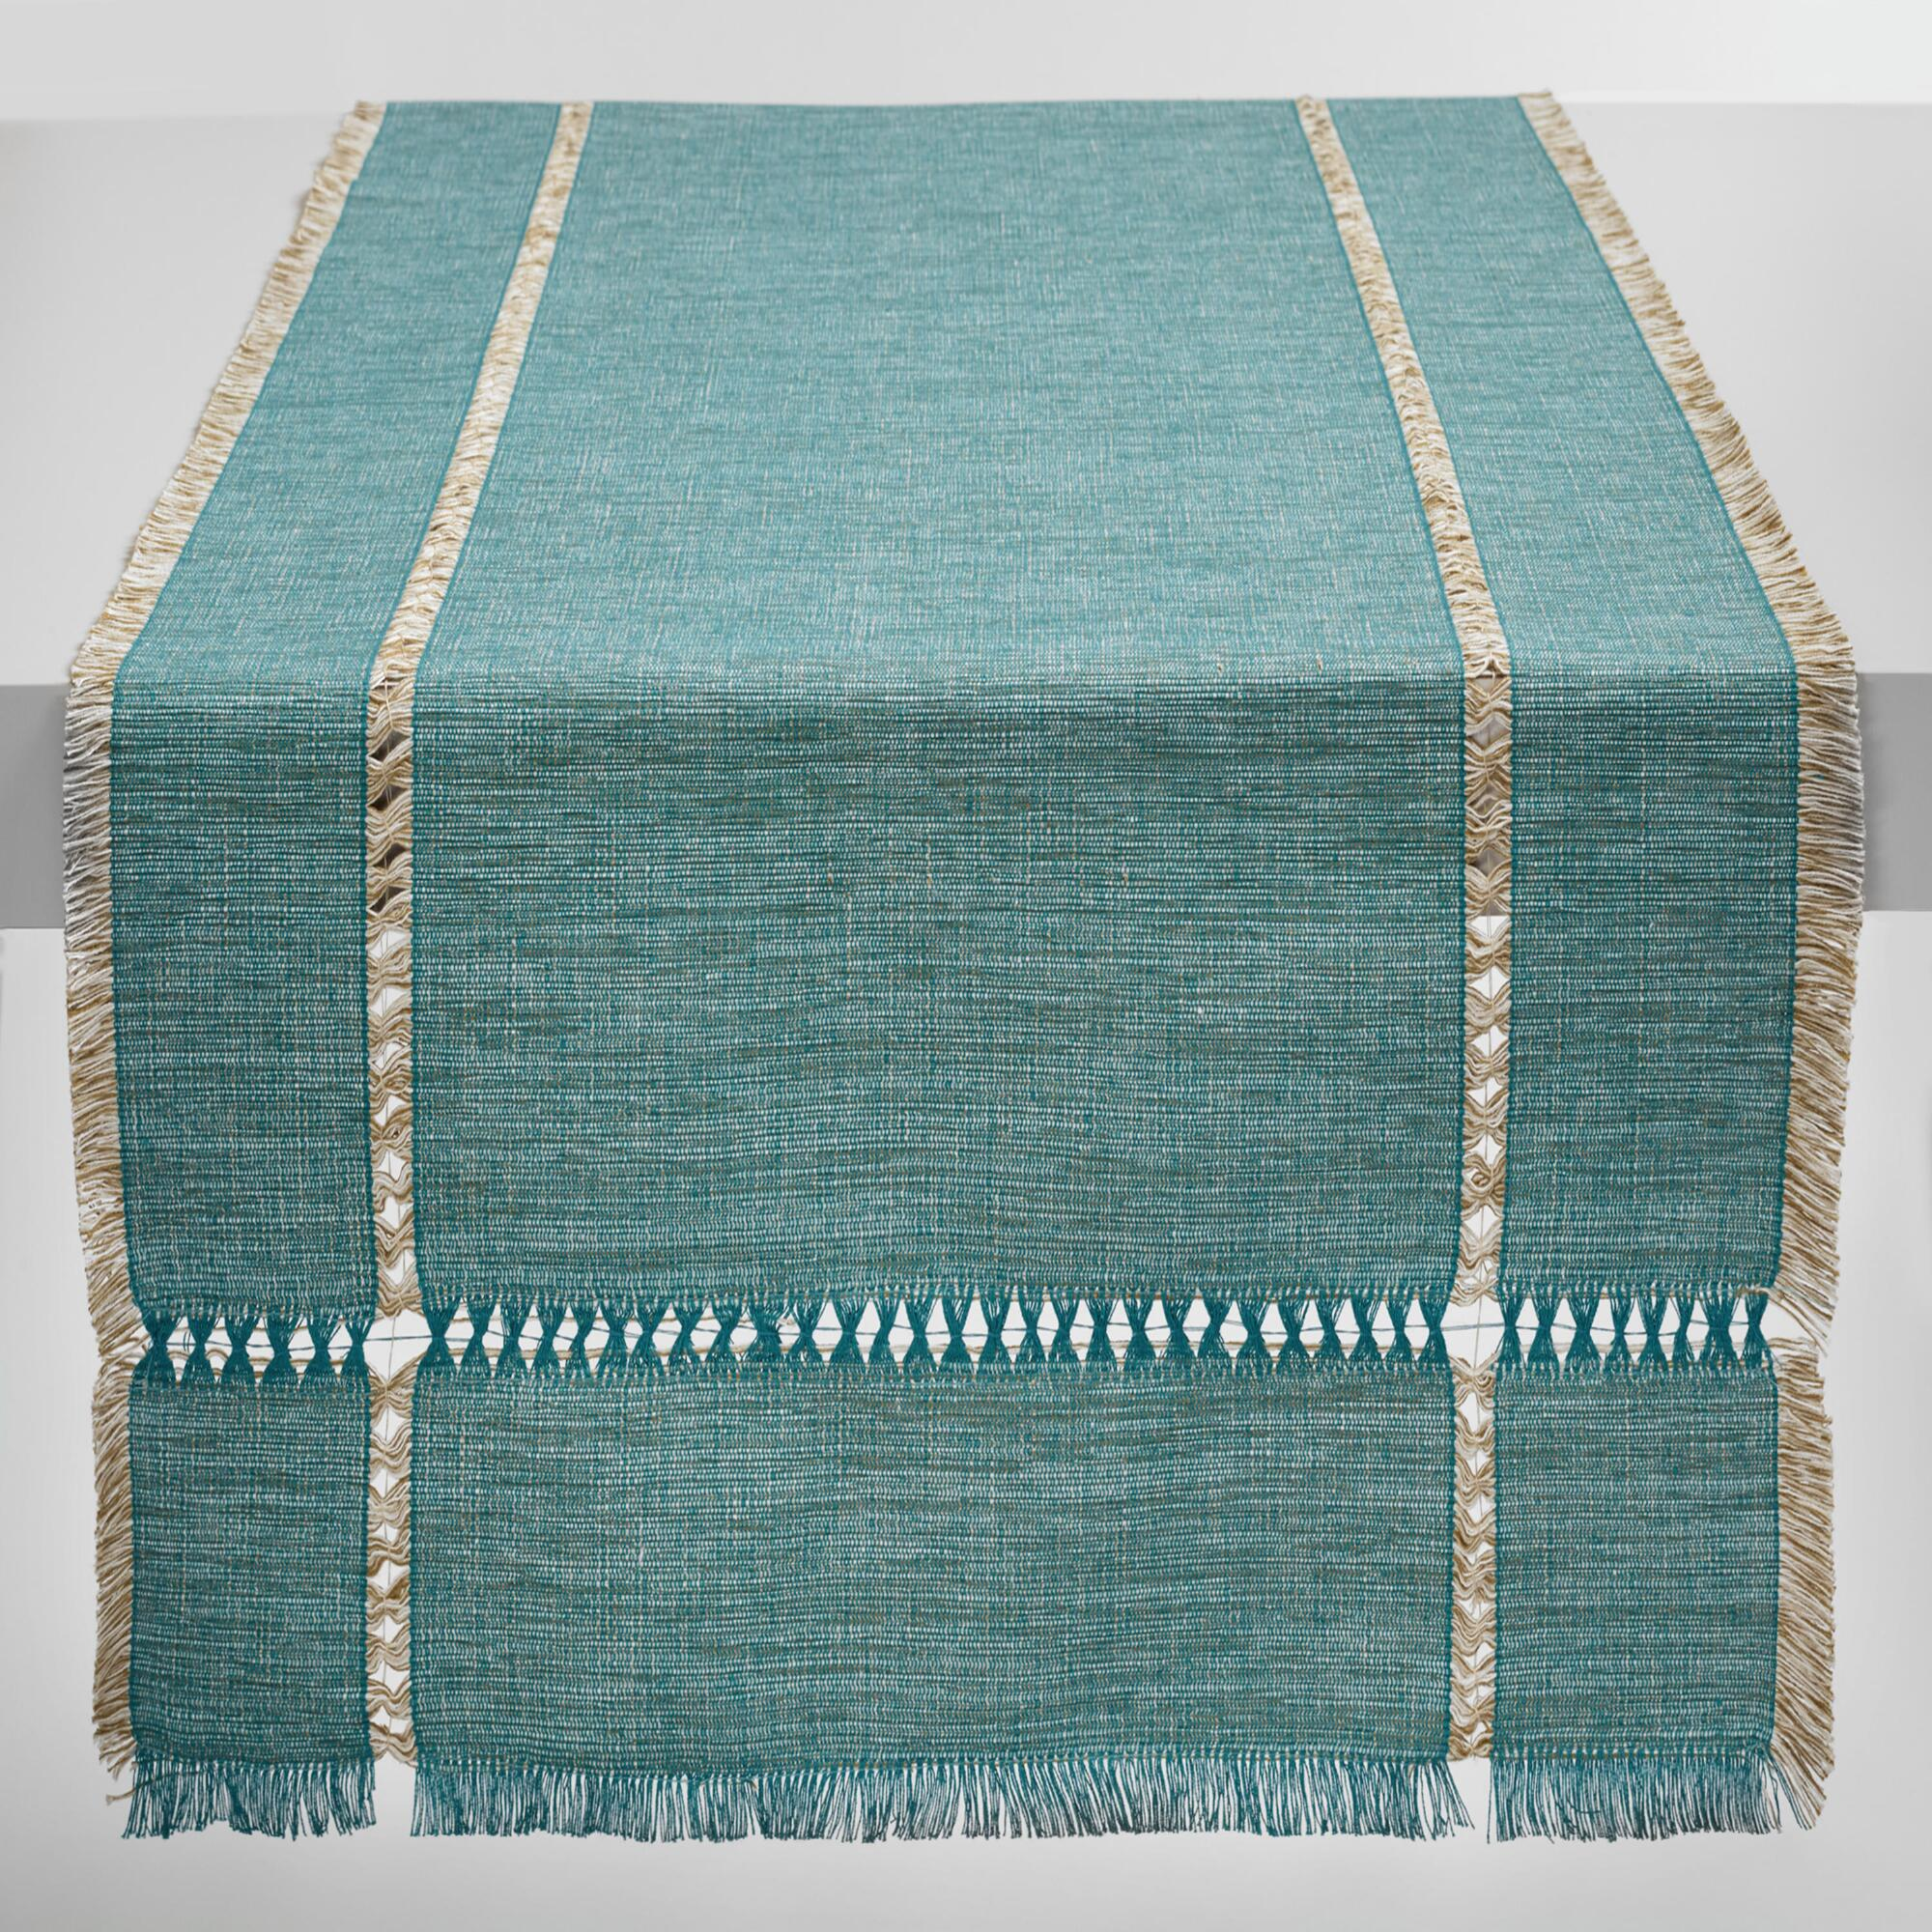 Bamboo Black Table Runner 72 Inches Checkered Kitchen Linen Dining - Oversized teal melange khadi table runner